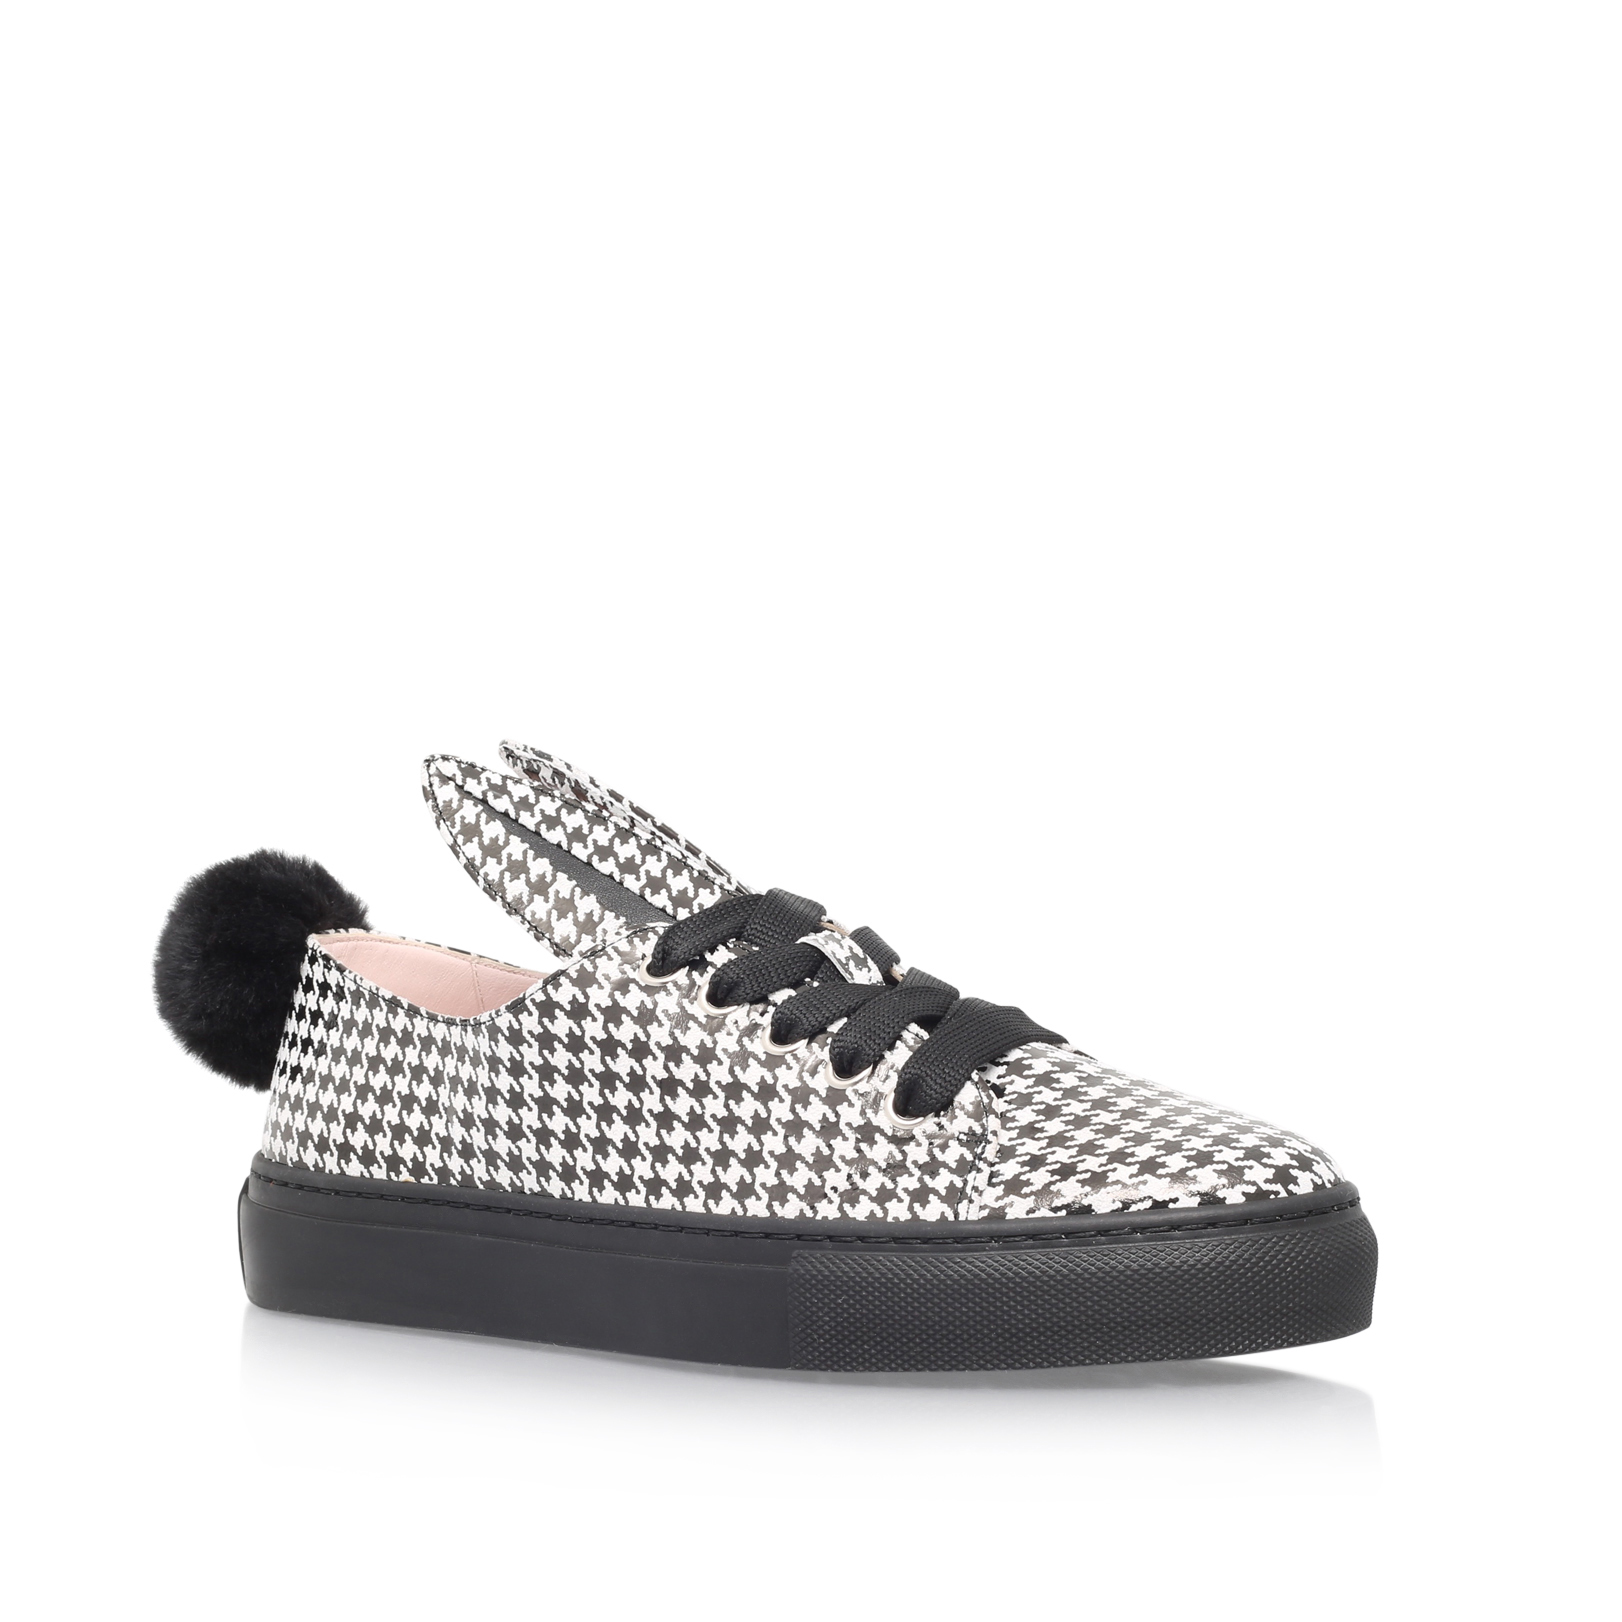 TAIL SNEAKS HOUNDSTOOTH